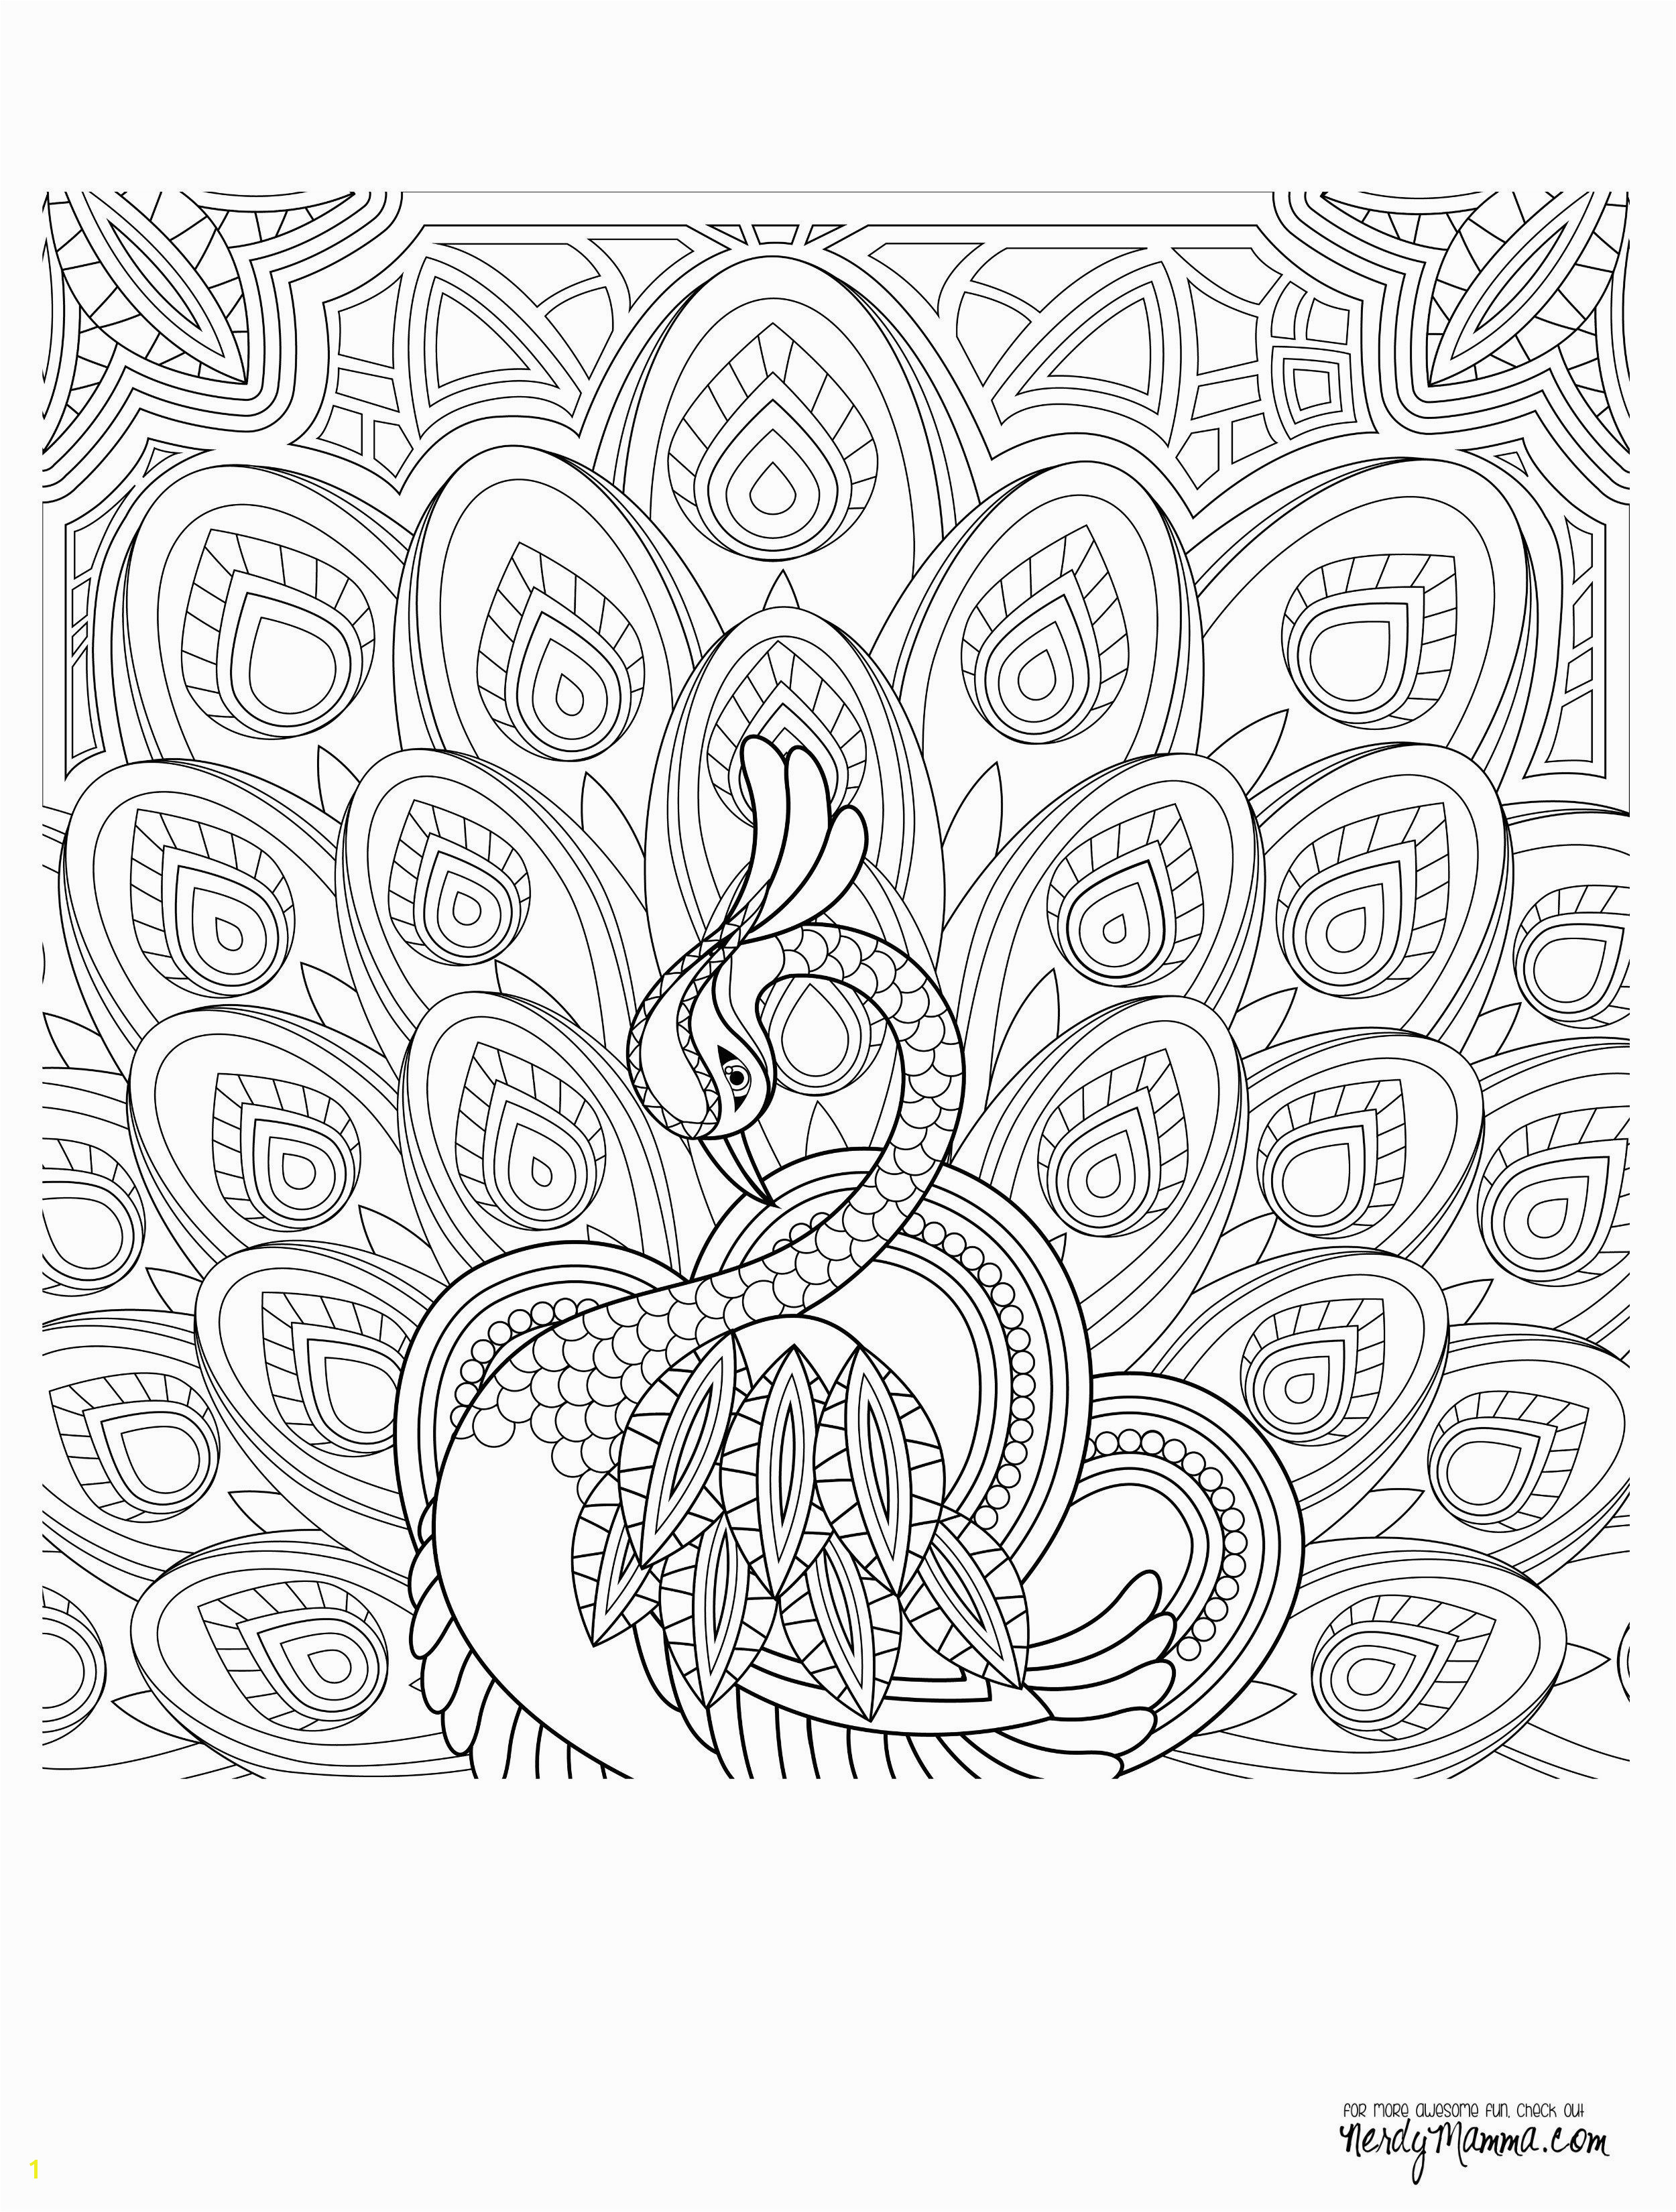 Peacock Feather Coloring pages colouring adult detailed advanced printable Kleuren voor volwassenen coloriage pour adulte anti stress kleurplaat voor